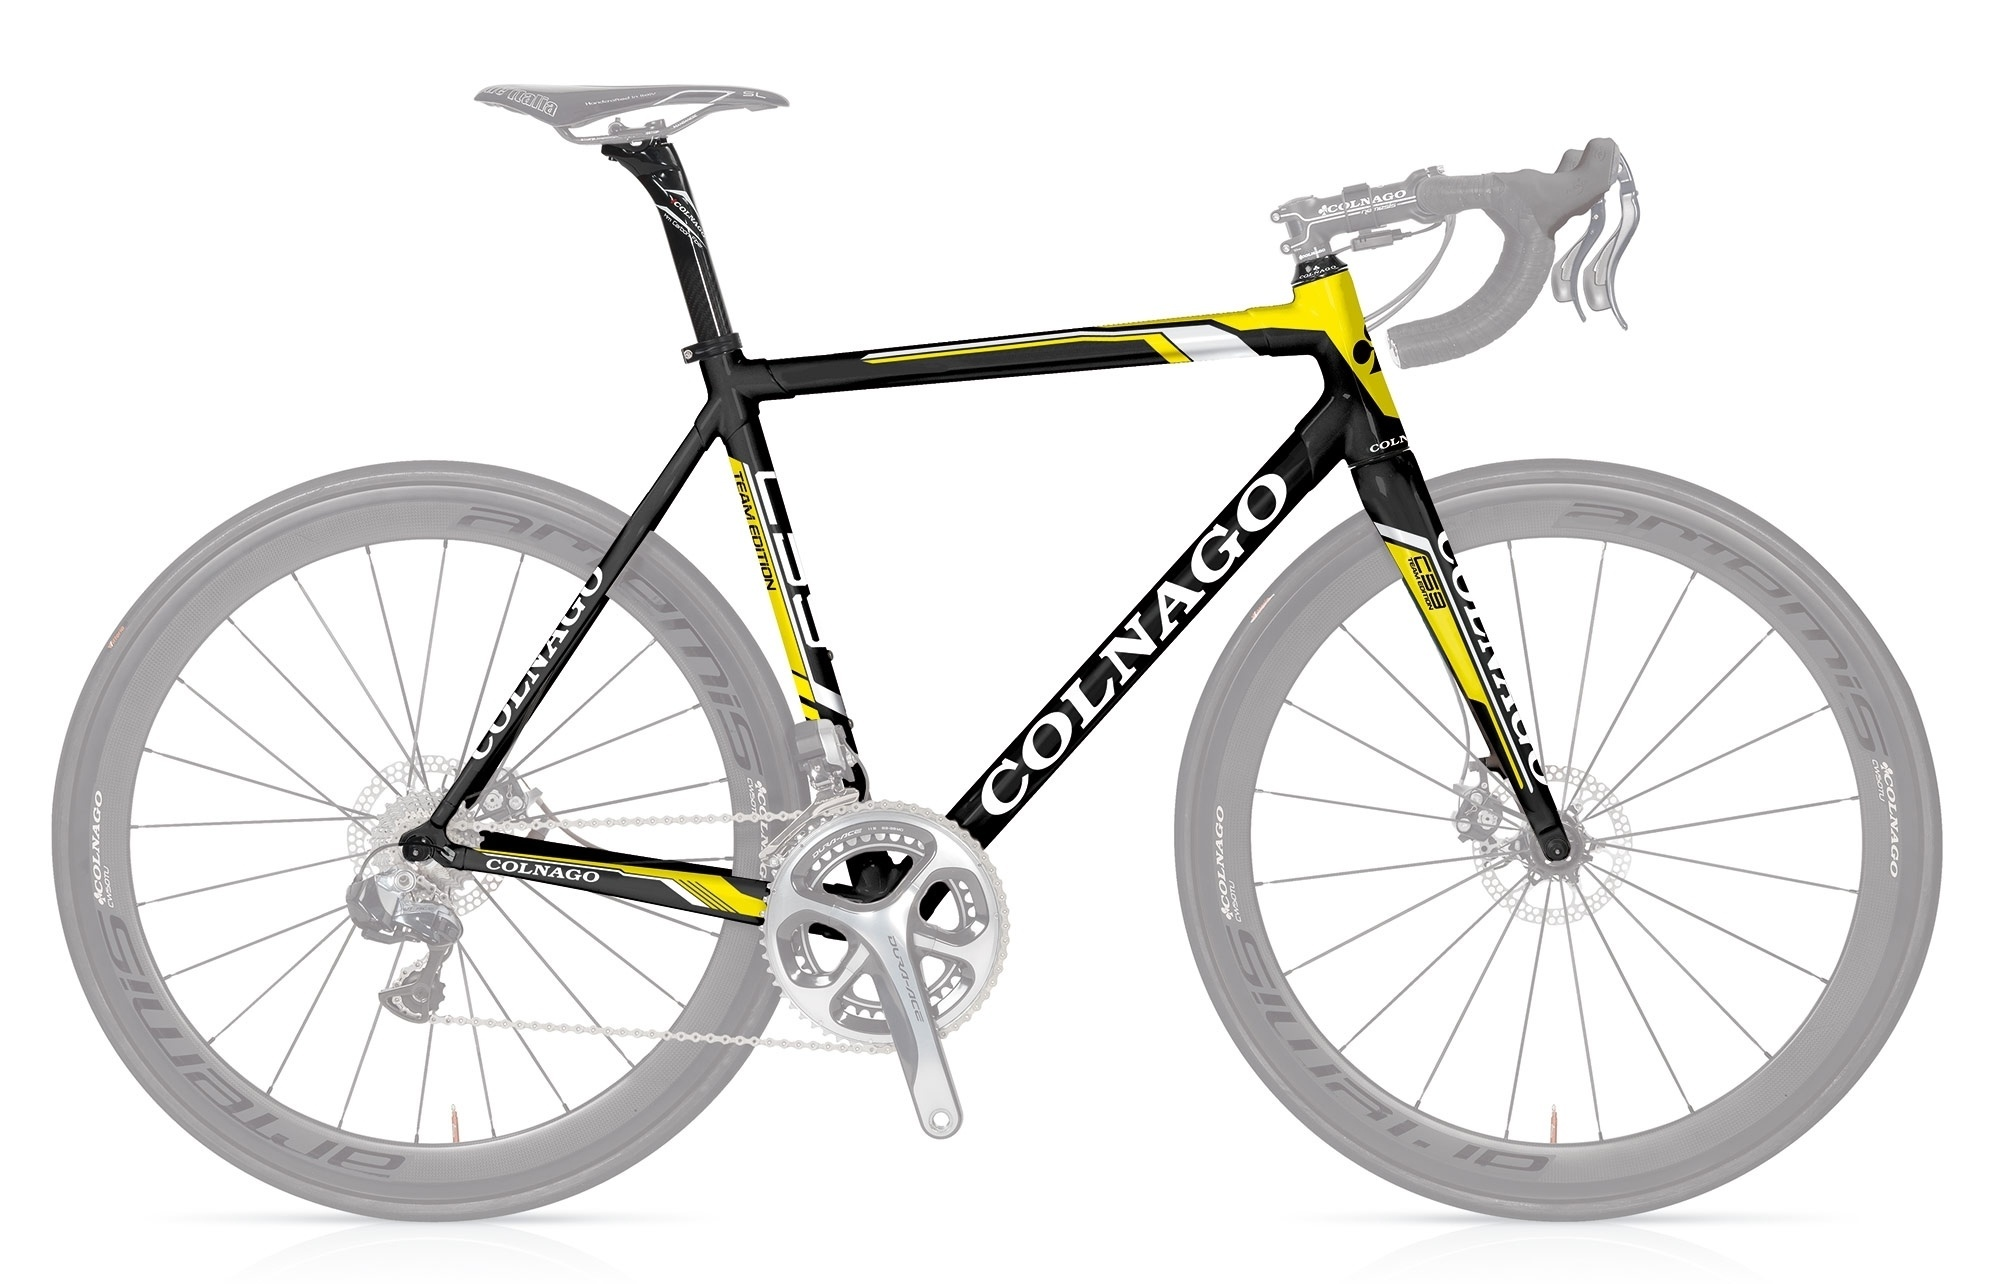 2014 Colnago C59 Disc Frameset R Amp A Cycles